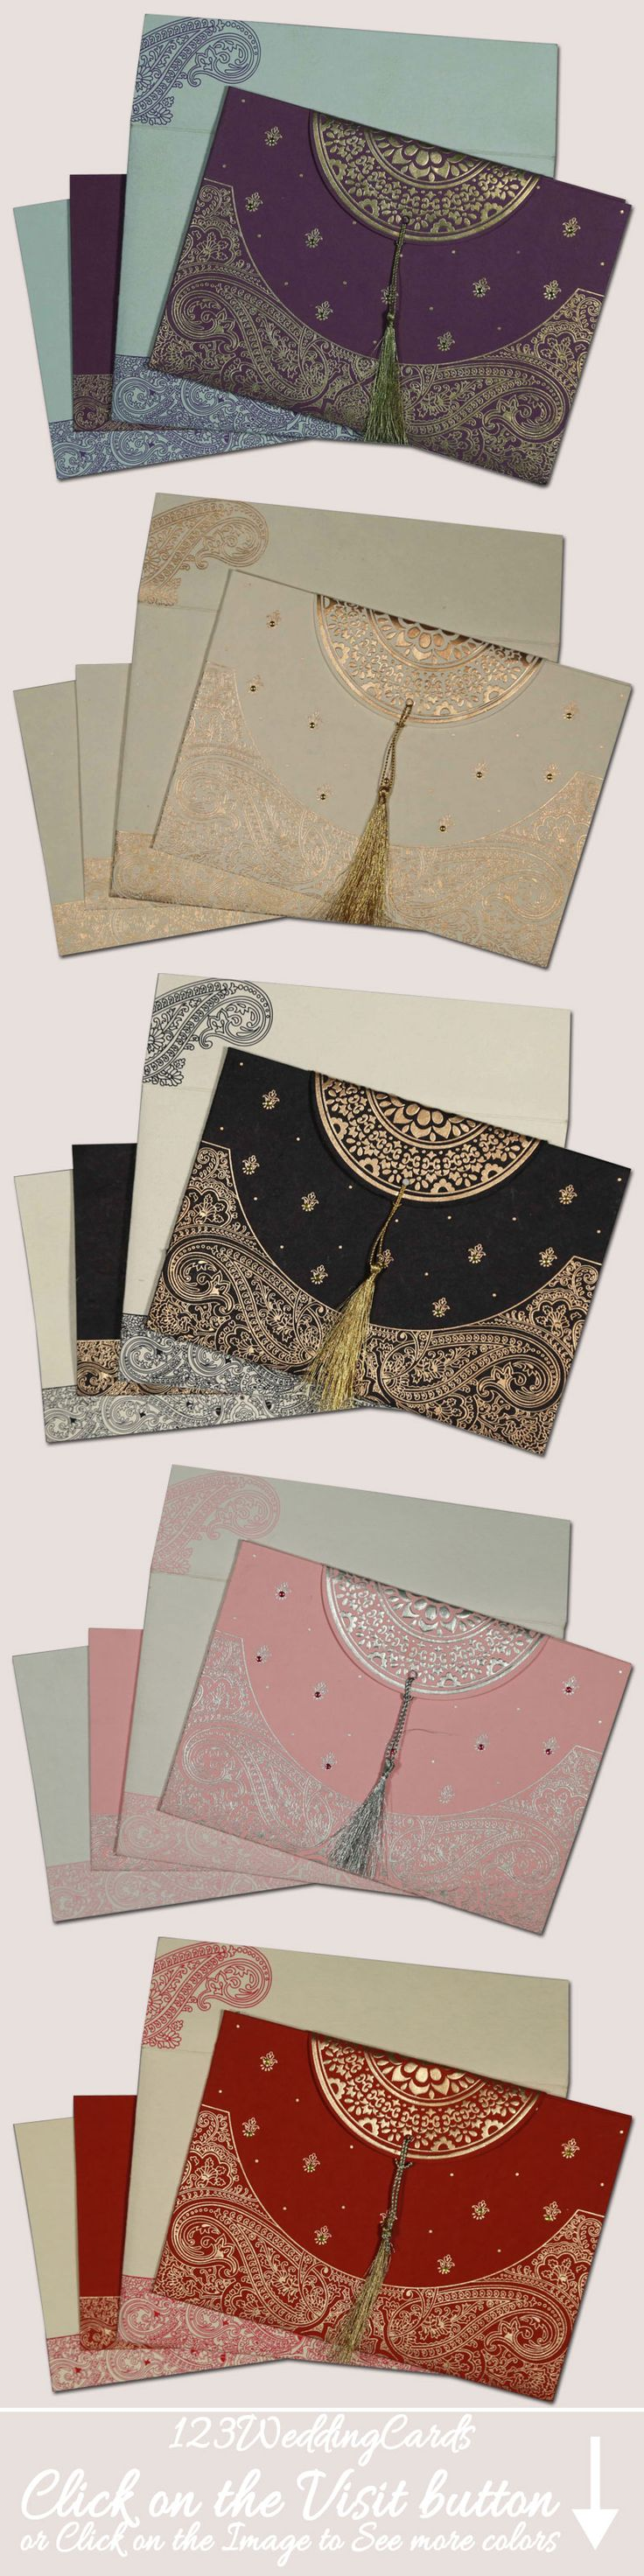 indian wedding cards wordings in hindi%0A  IndianweddingInvitations  HinduWeddingInvitations   onlineWeddinginvitations  TraditionalWeddingcards  WeddingCards  Weddings     Hindu